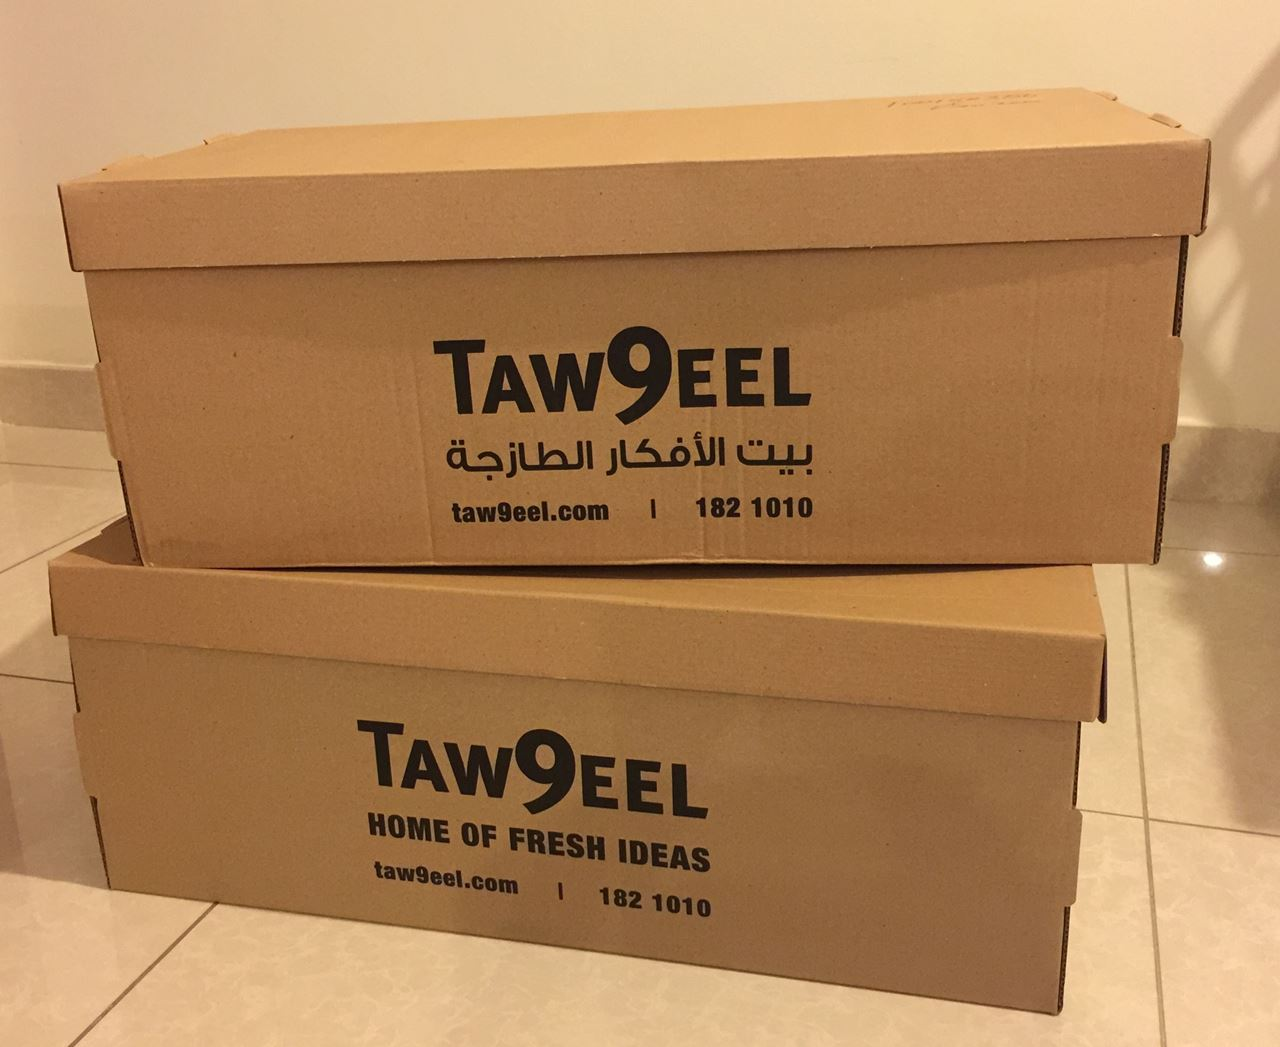 Our Experience with Taw9eel Application